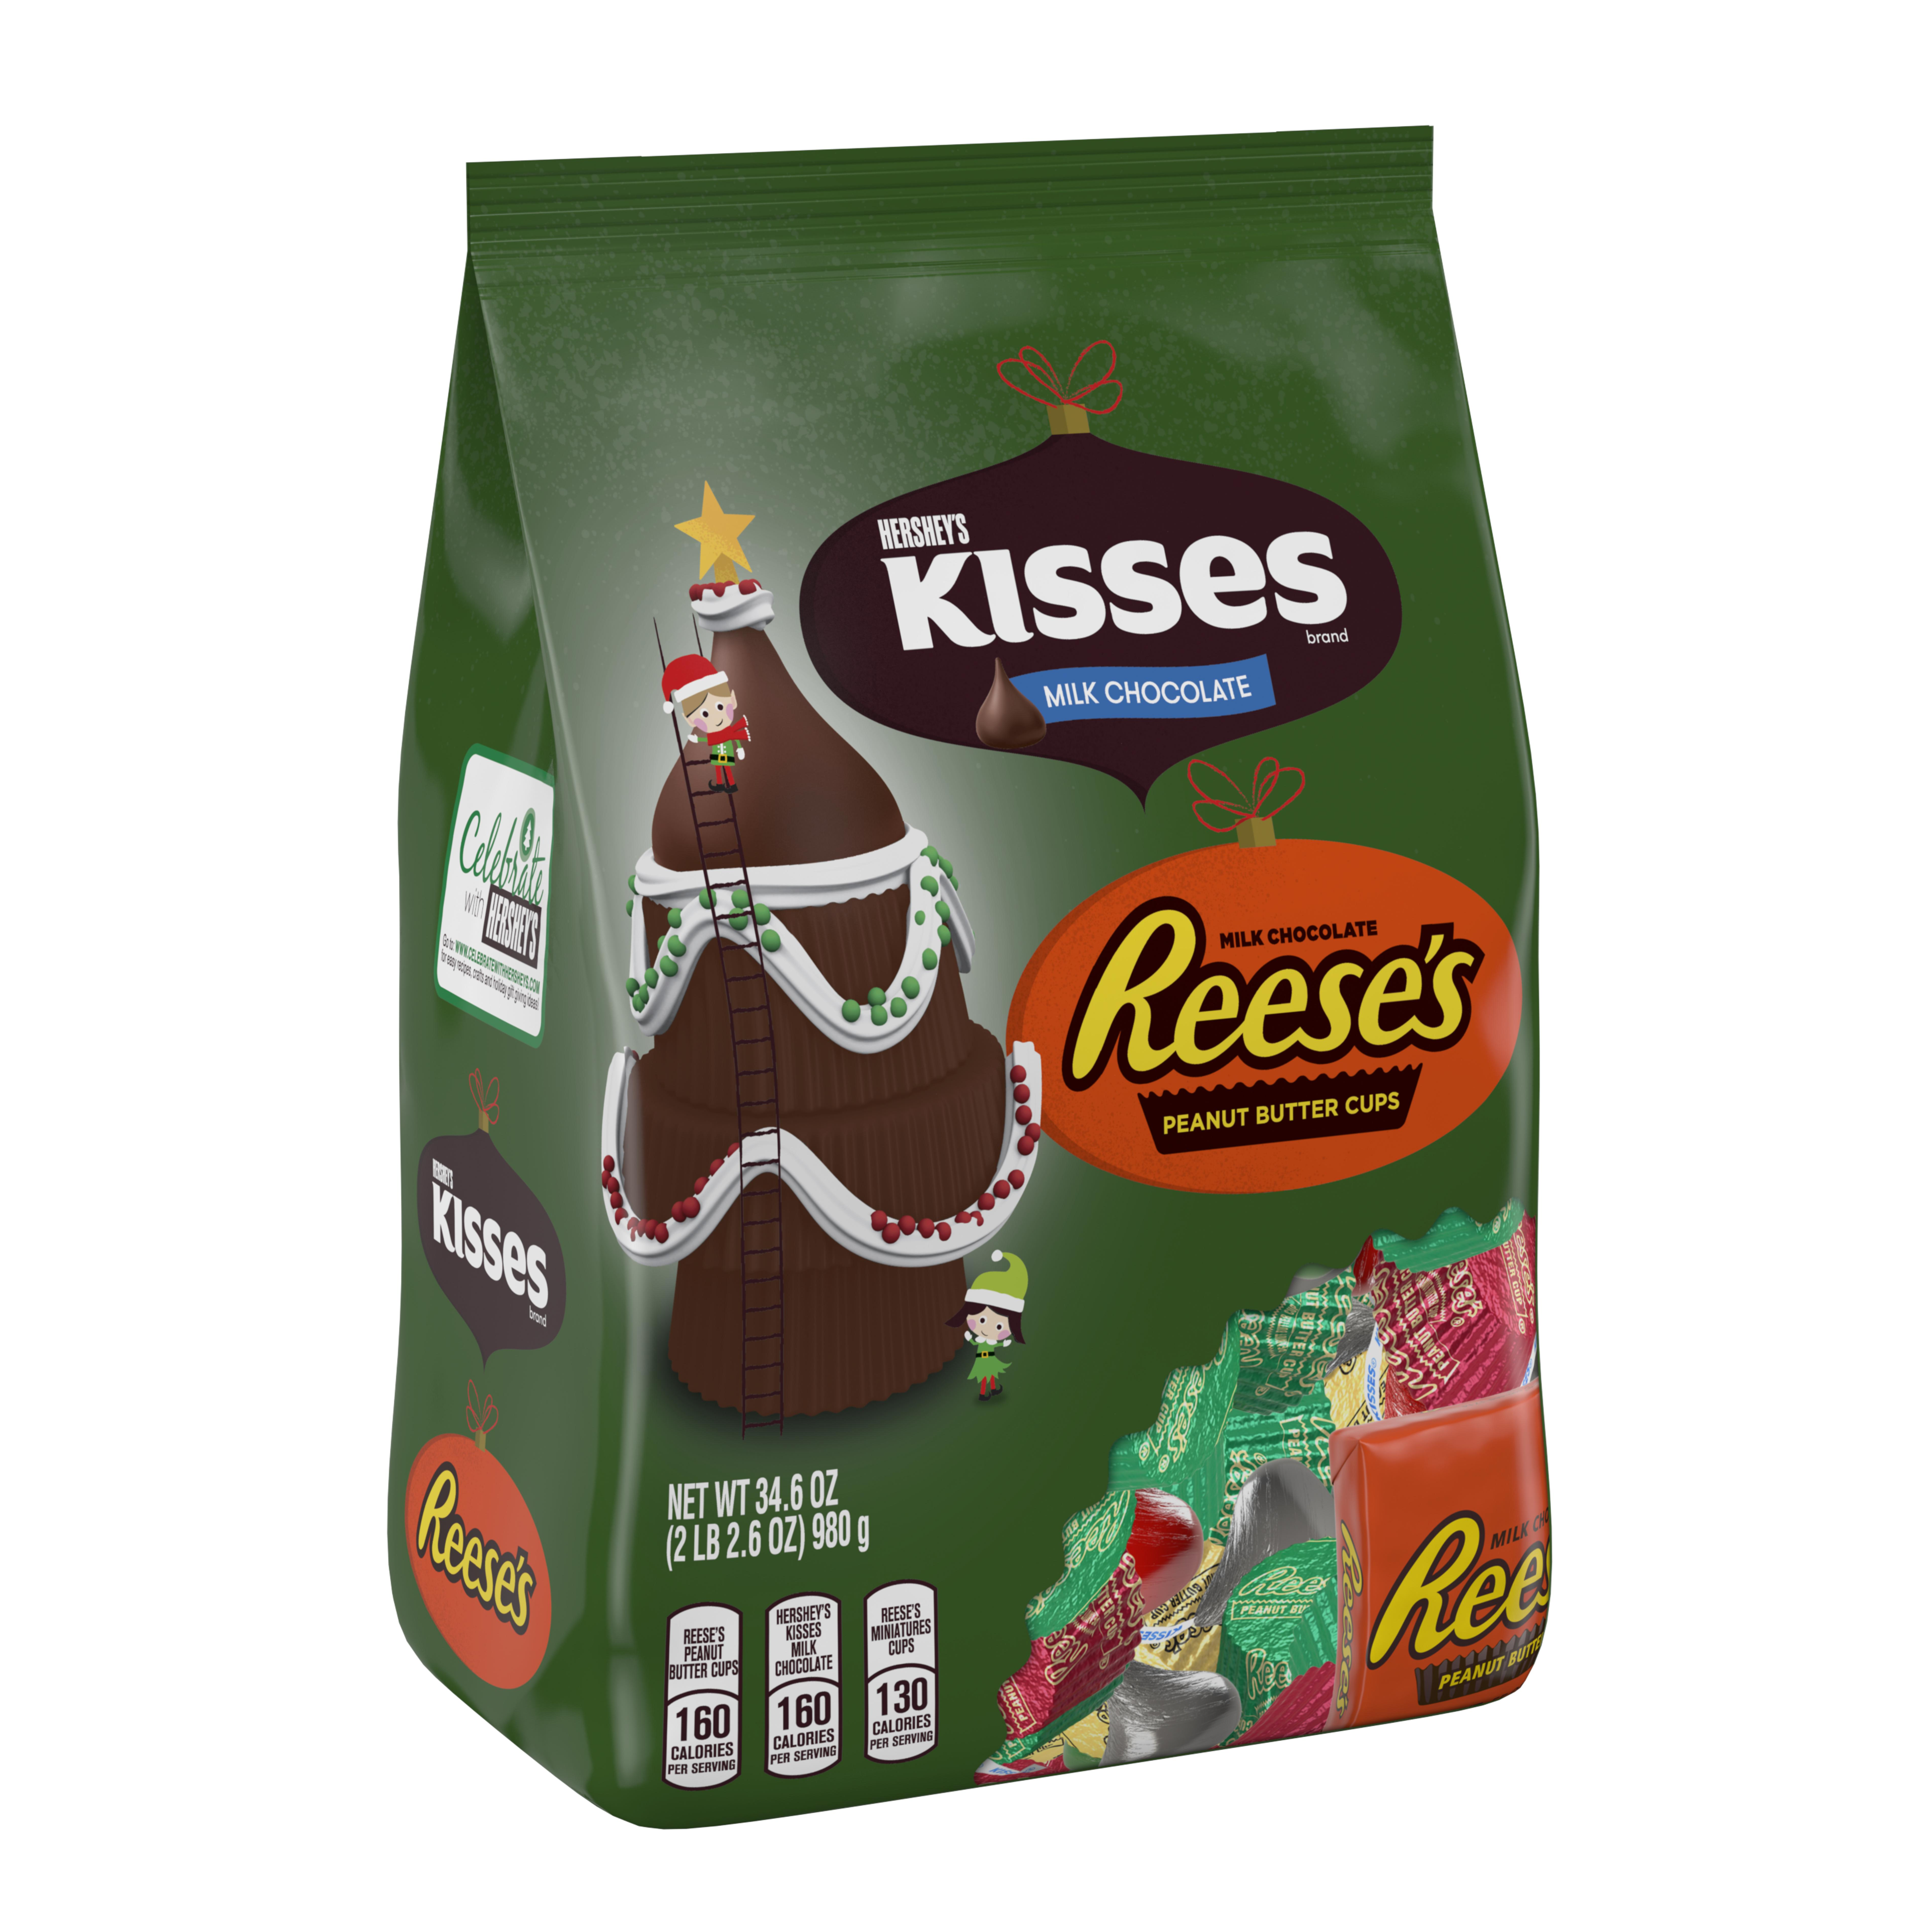 Hershey, Kisses Milk Chocolate and Reese's Peanut Butter Cup Holiday Assortment, 34.6 Oz